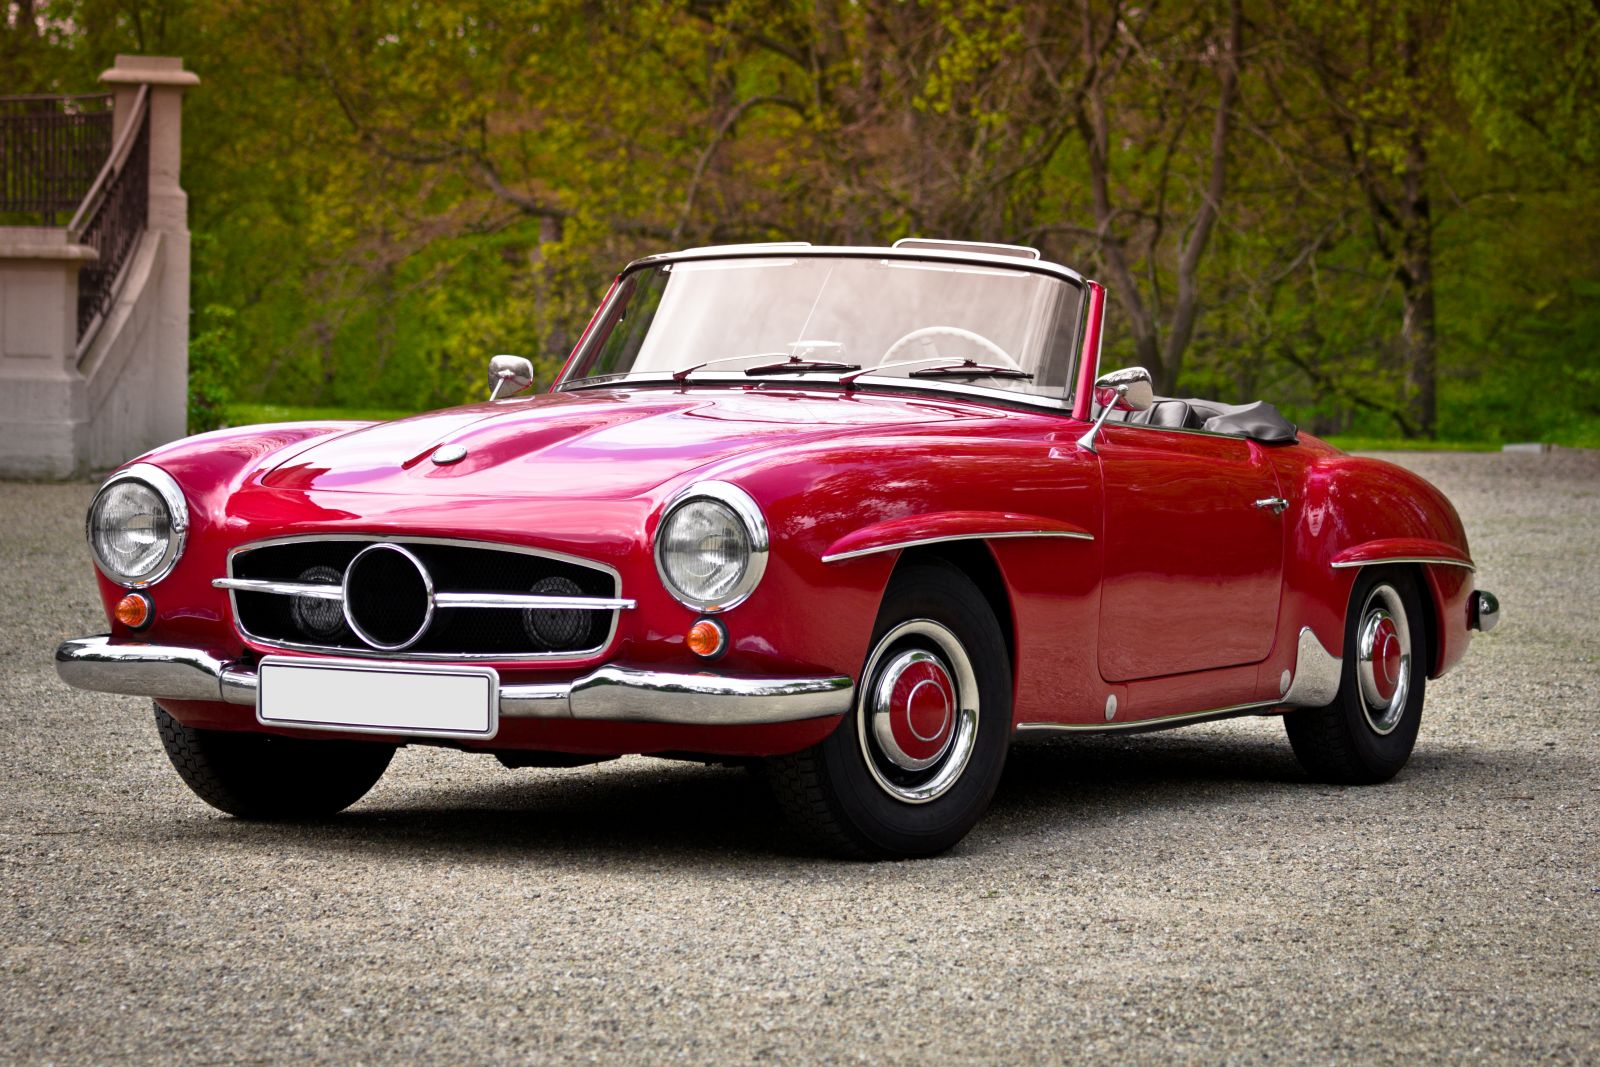 Classic Car Wallpapers Vehicles Hq Classic Car Pictures 4k Wallpapers 2019